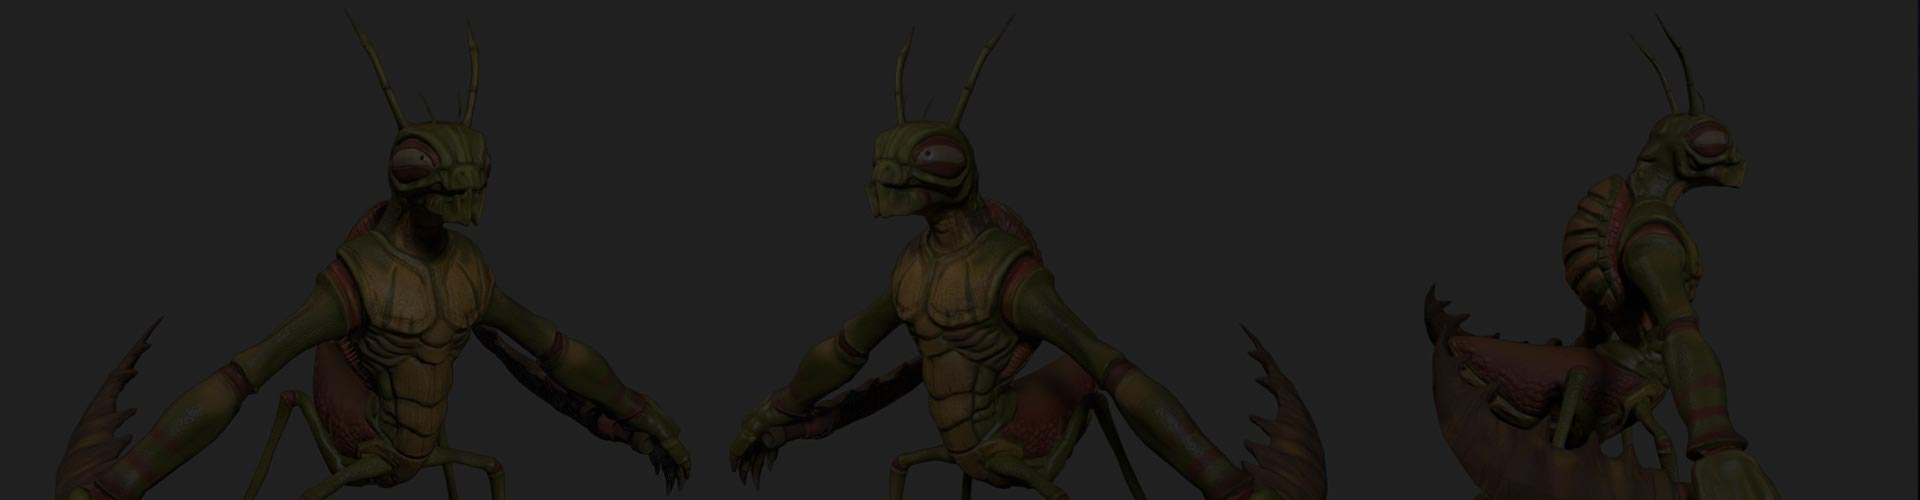 3D Game Asset called 3D Stylized Bug Character for Game Development Company